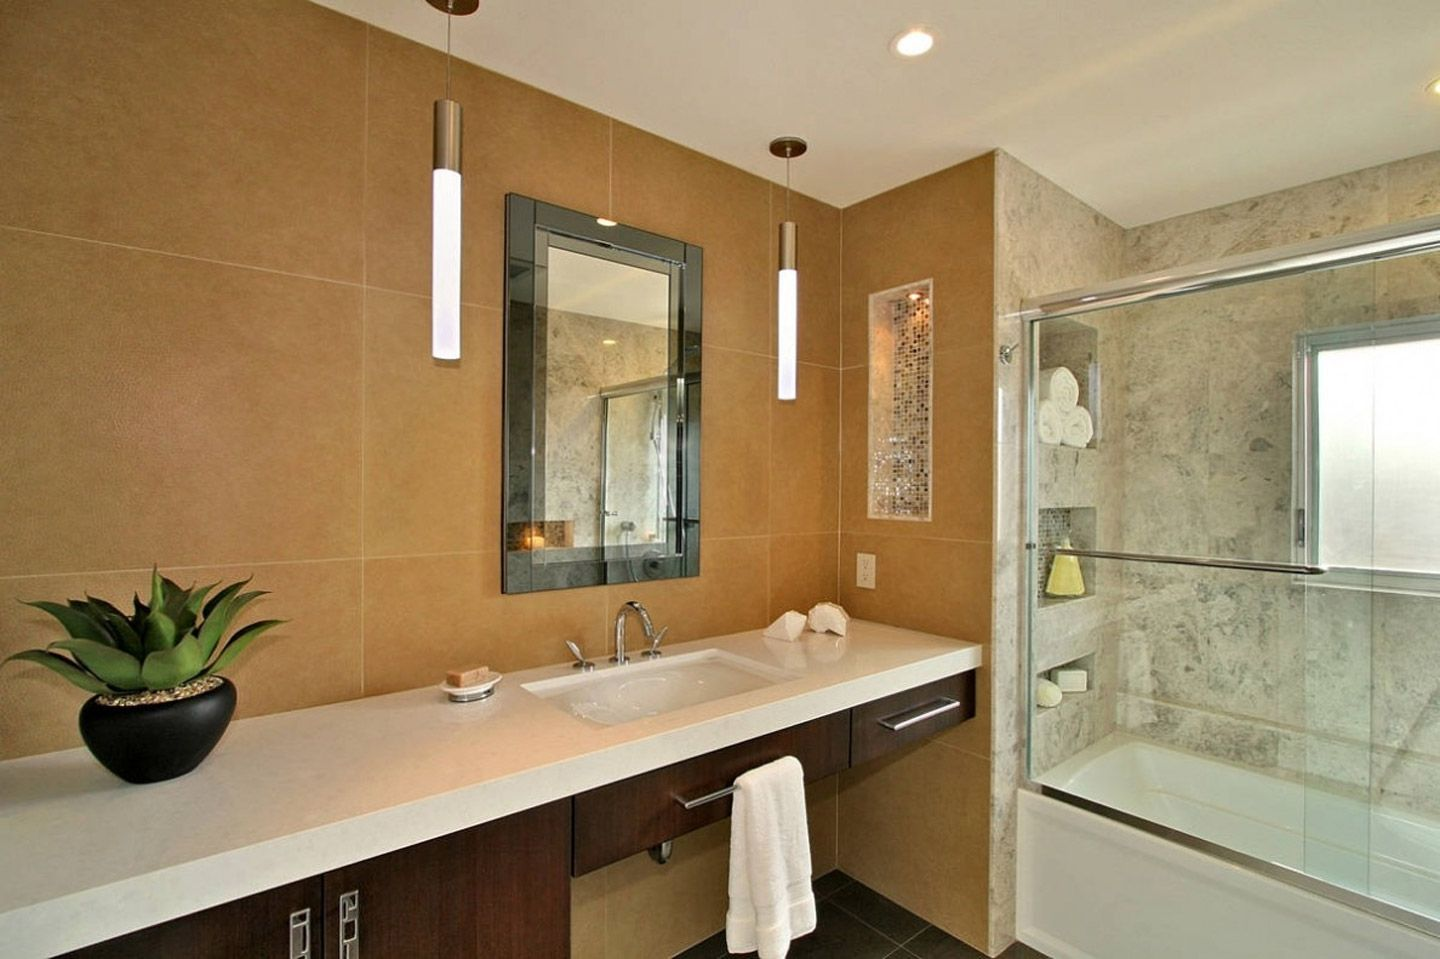 Small Bathroom Designs For Older Homes Bathroom Remodeling - Bathroom remodel for elderly for bathroom decor ideas